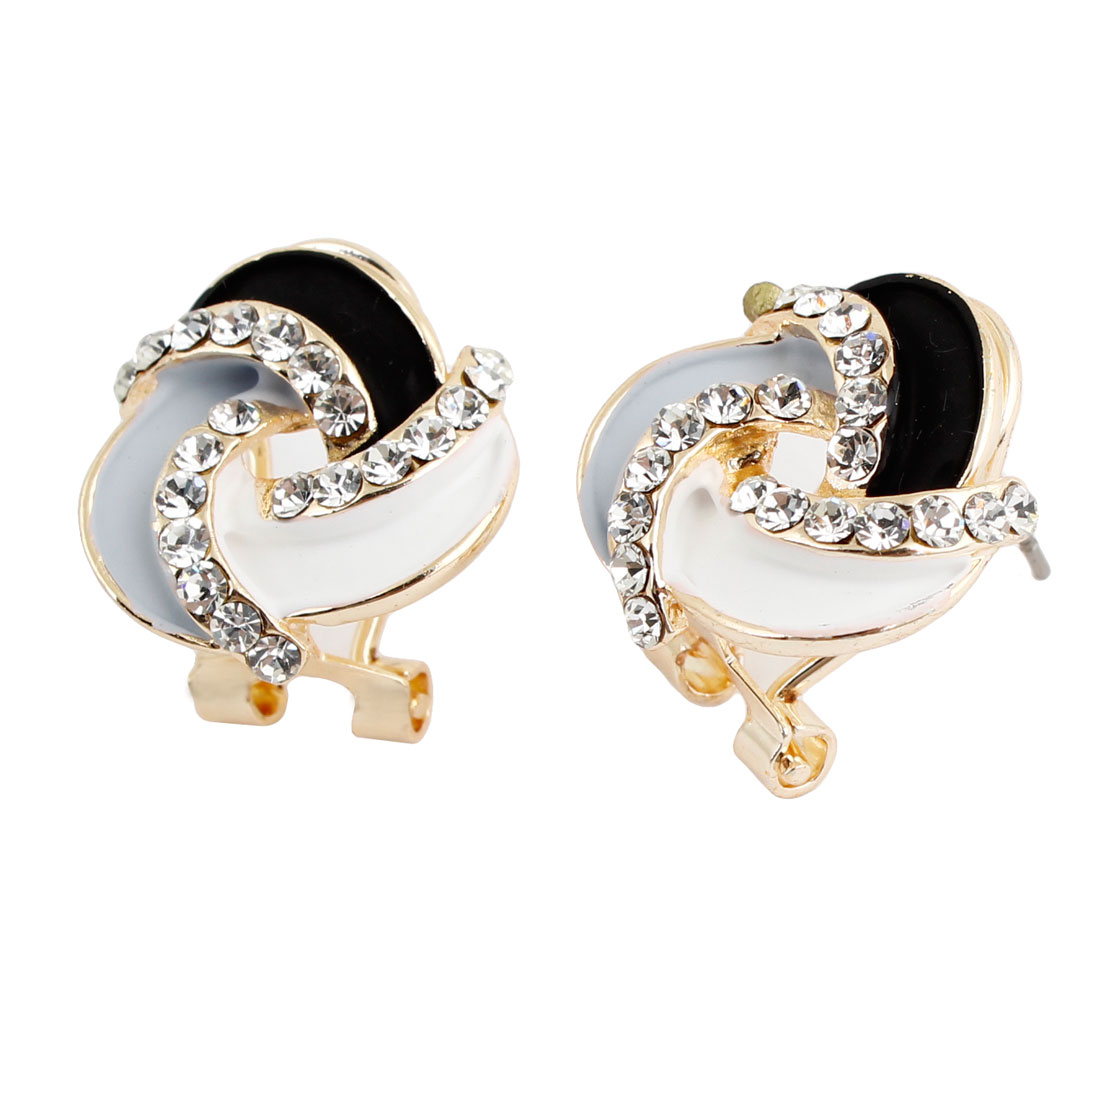 Pair White Black Pale Blue Pendant French Clip Earrings Earbob for Women